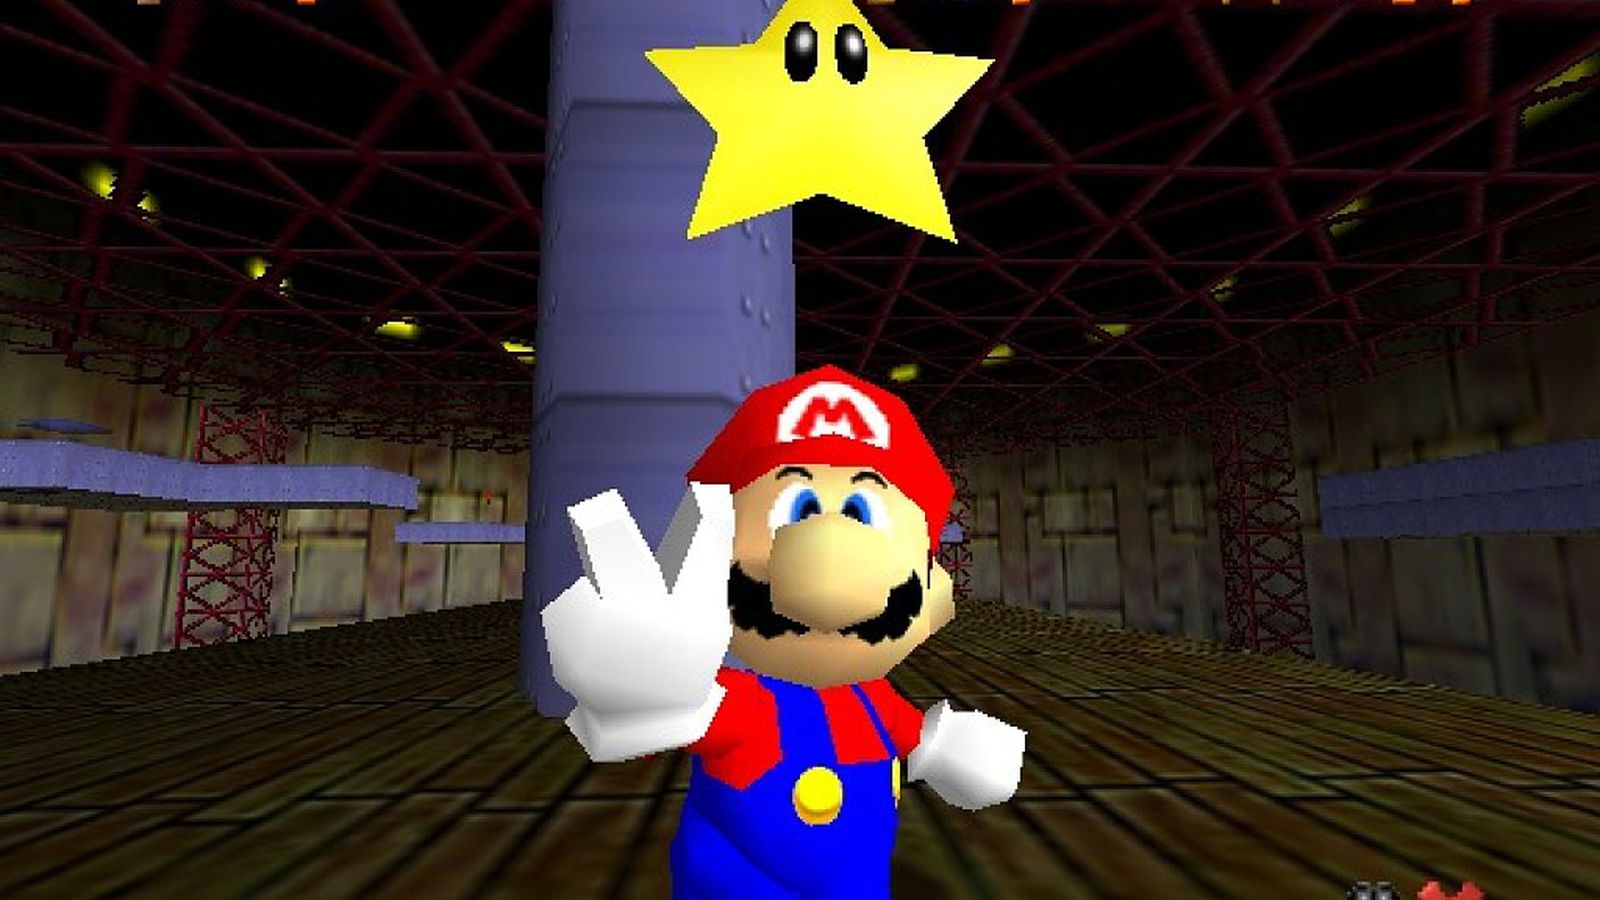 Mario throws up a peace sign after collecting a Power Star in Super Mario 64.